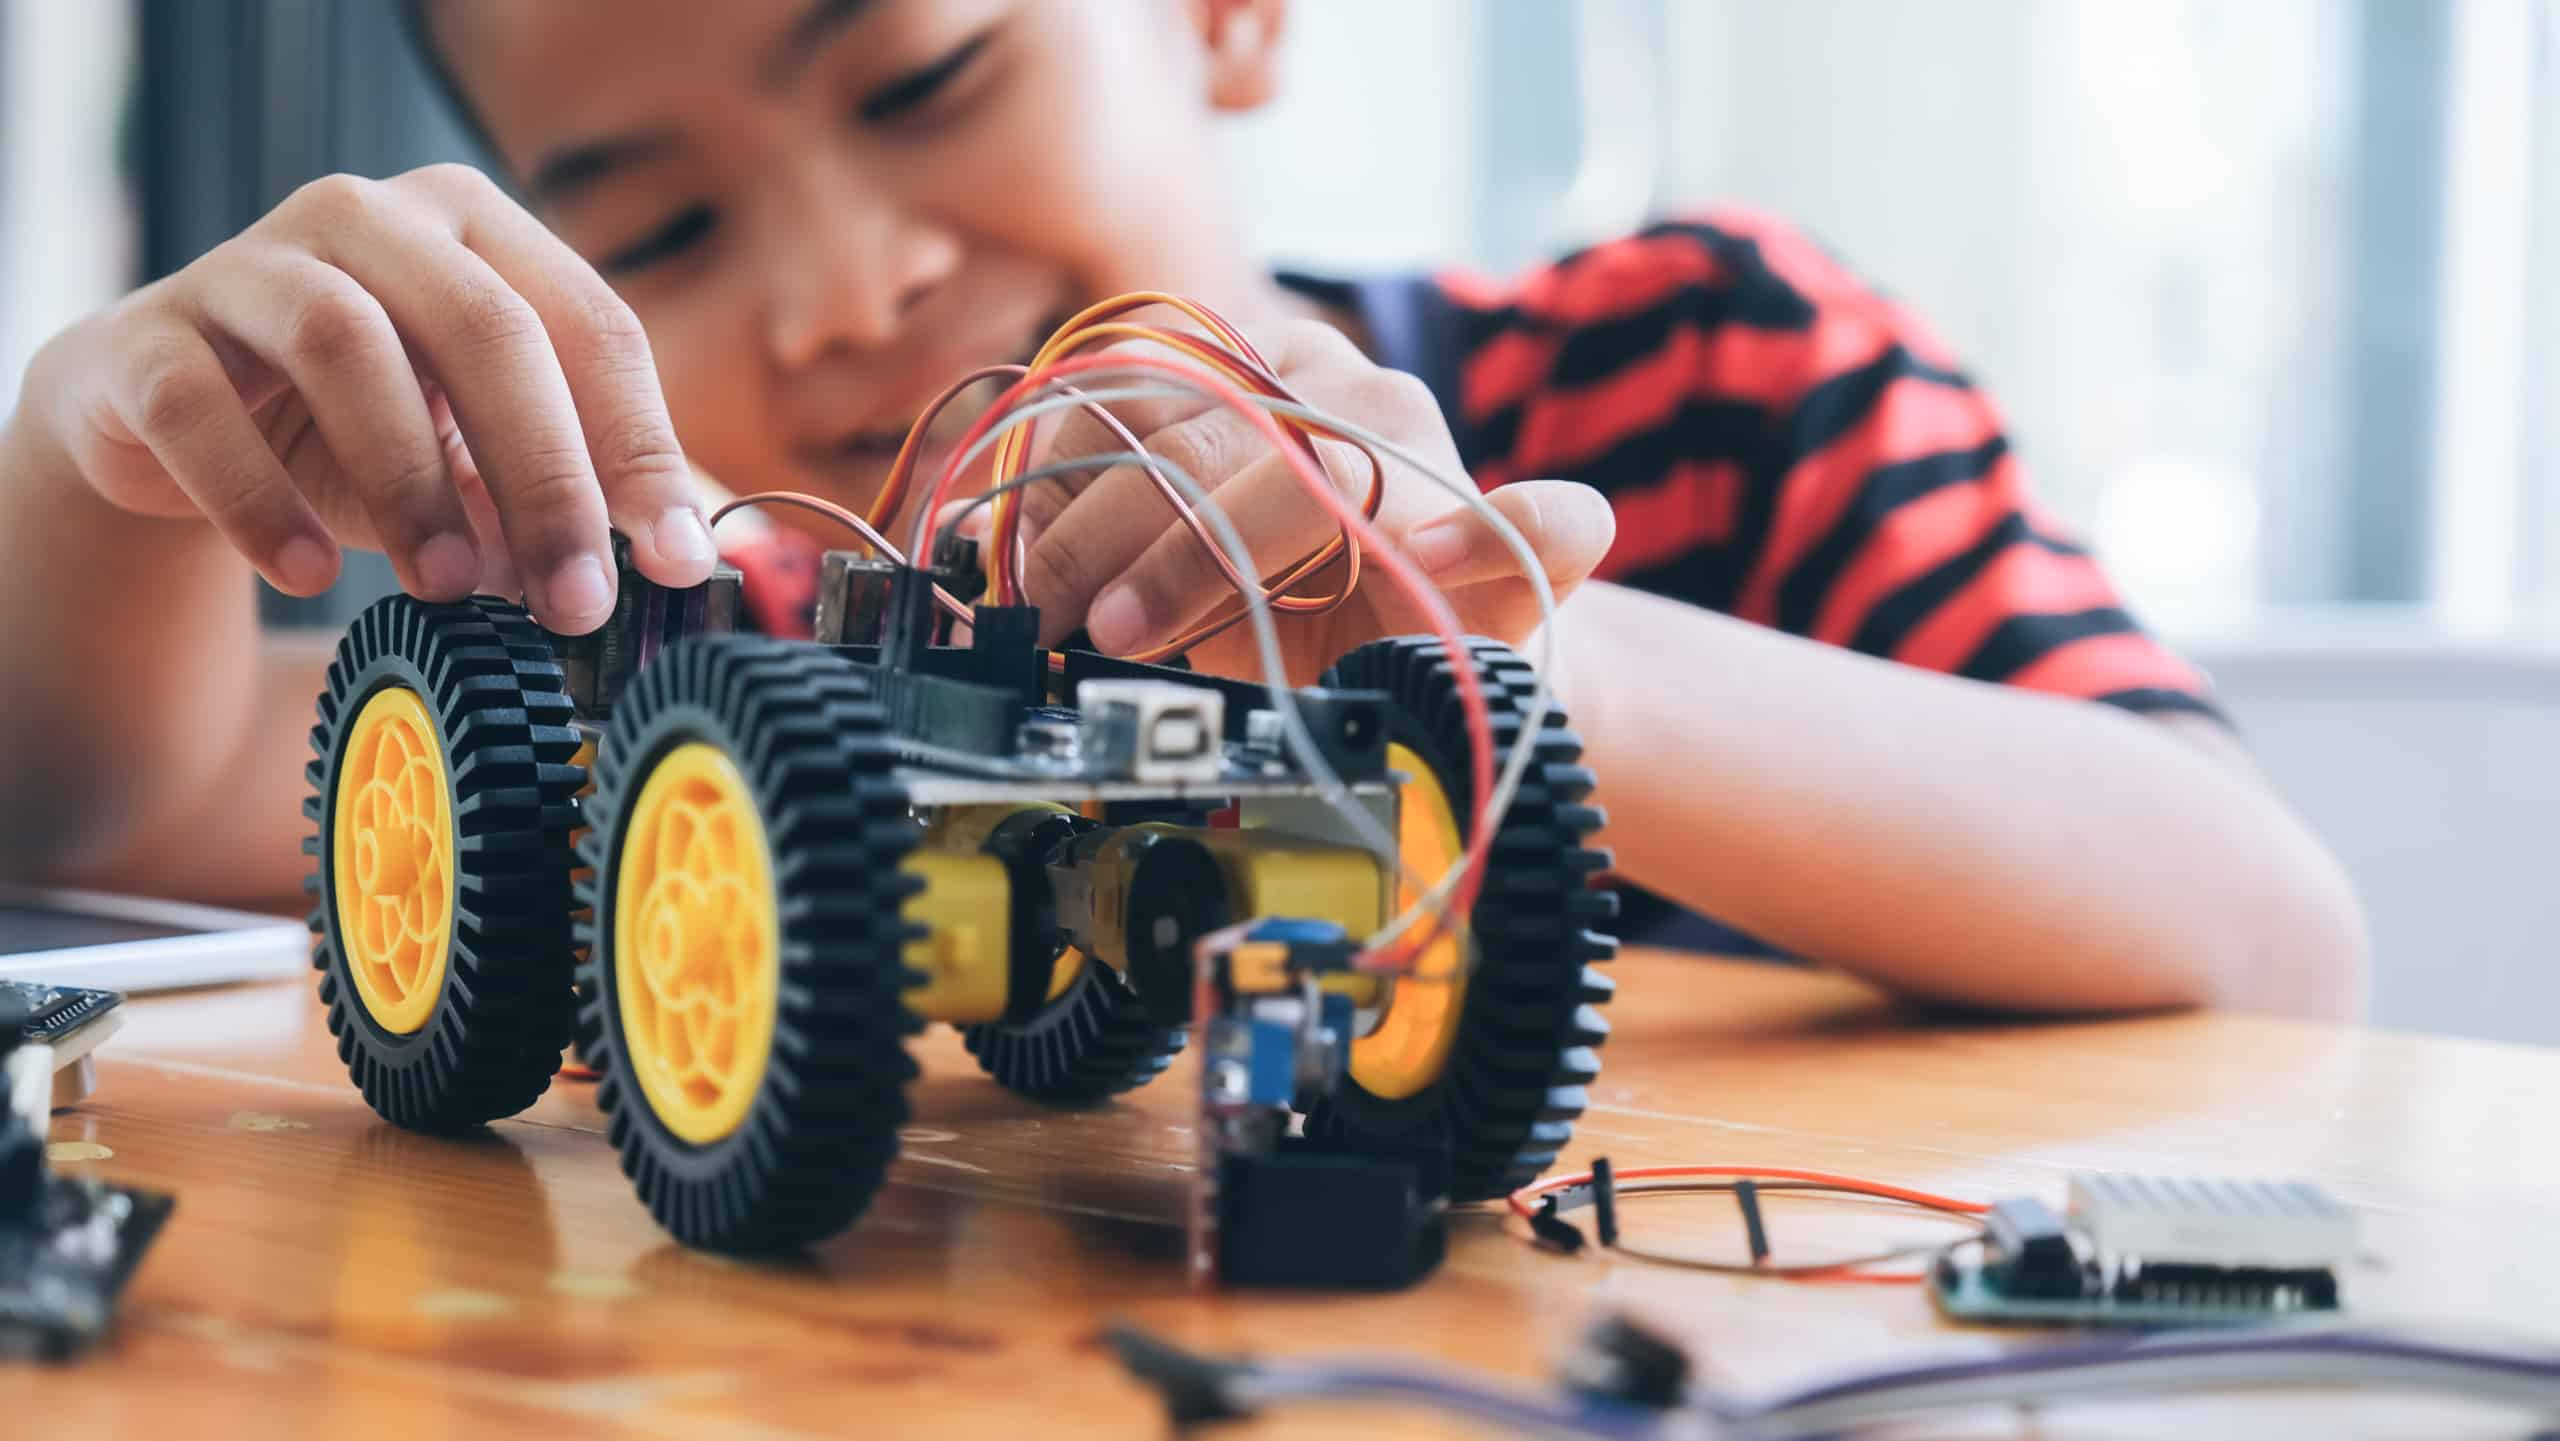 boy building robot